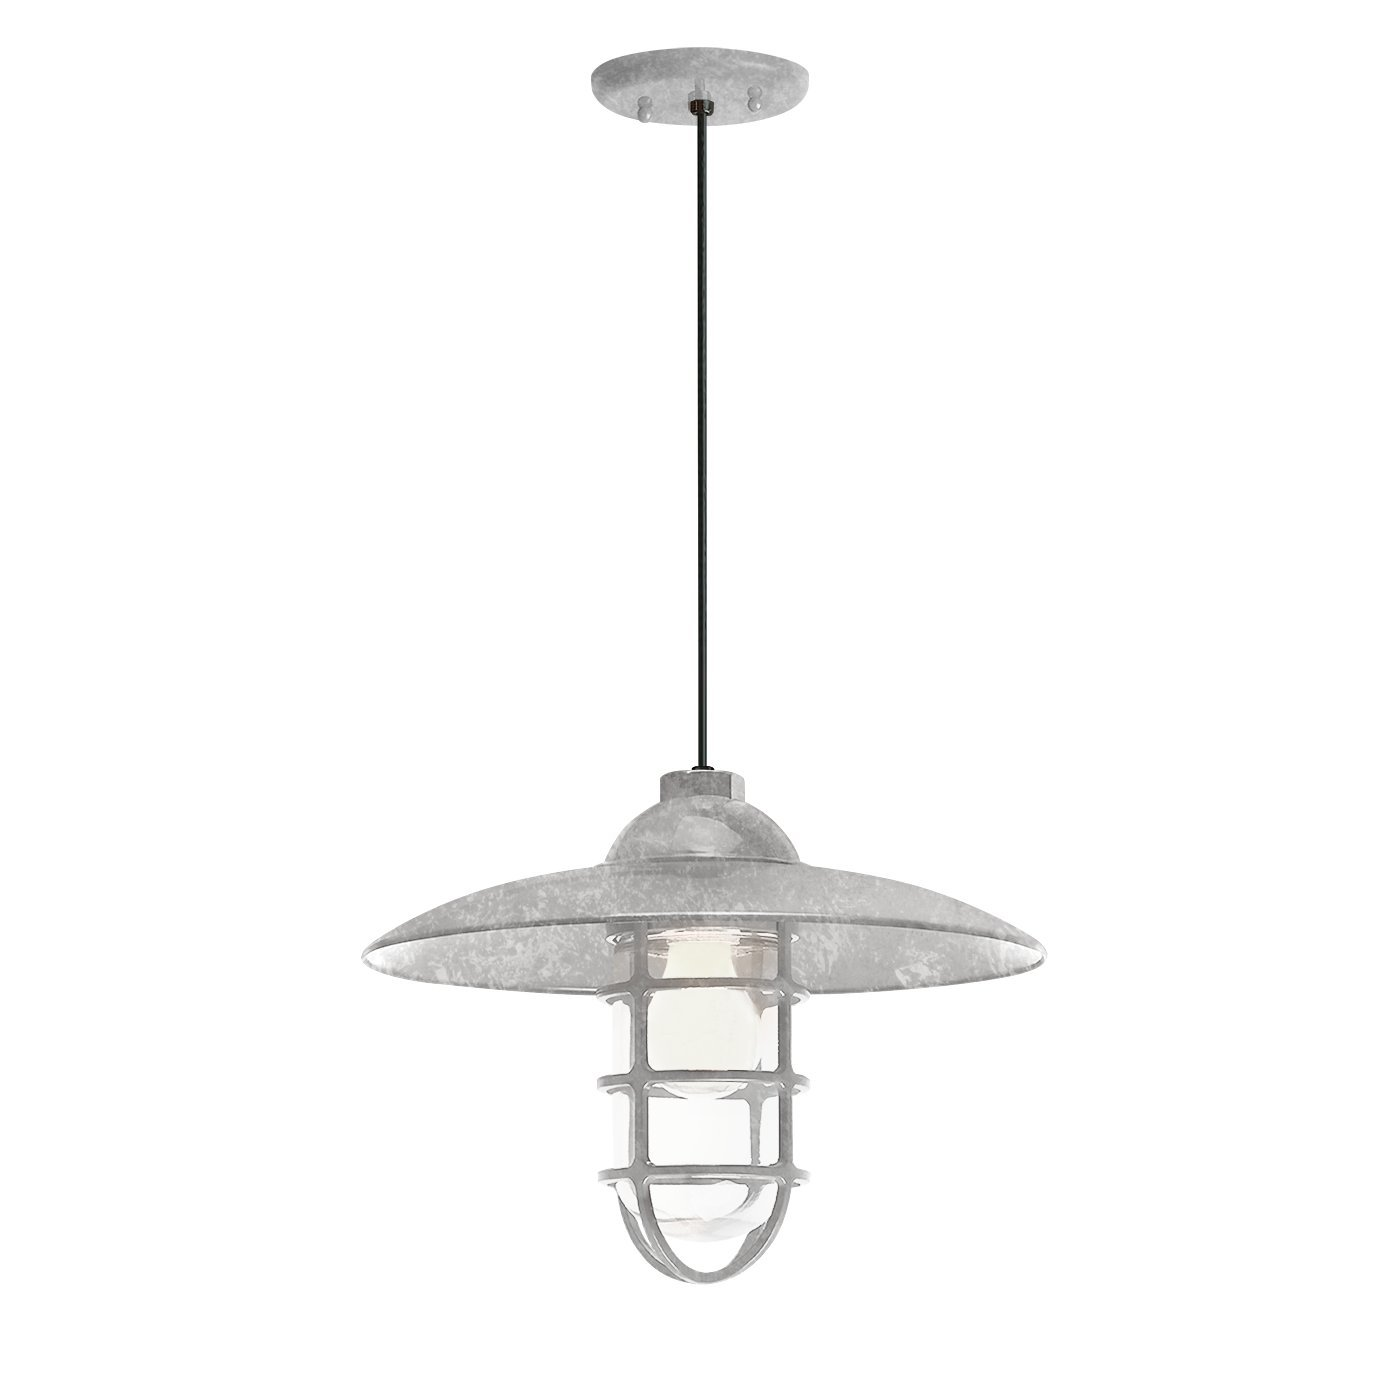 Troy RLM 5DRID13MGA-BC Retro Industrial Dome Outdoor Pendant with Wire Guard, Galvanized by Troy RLM